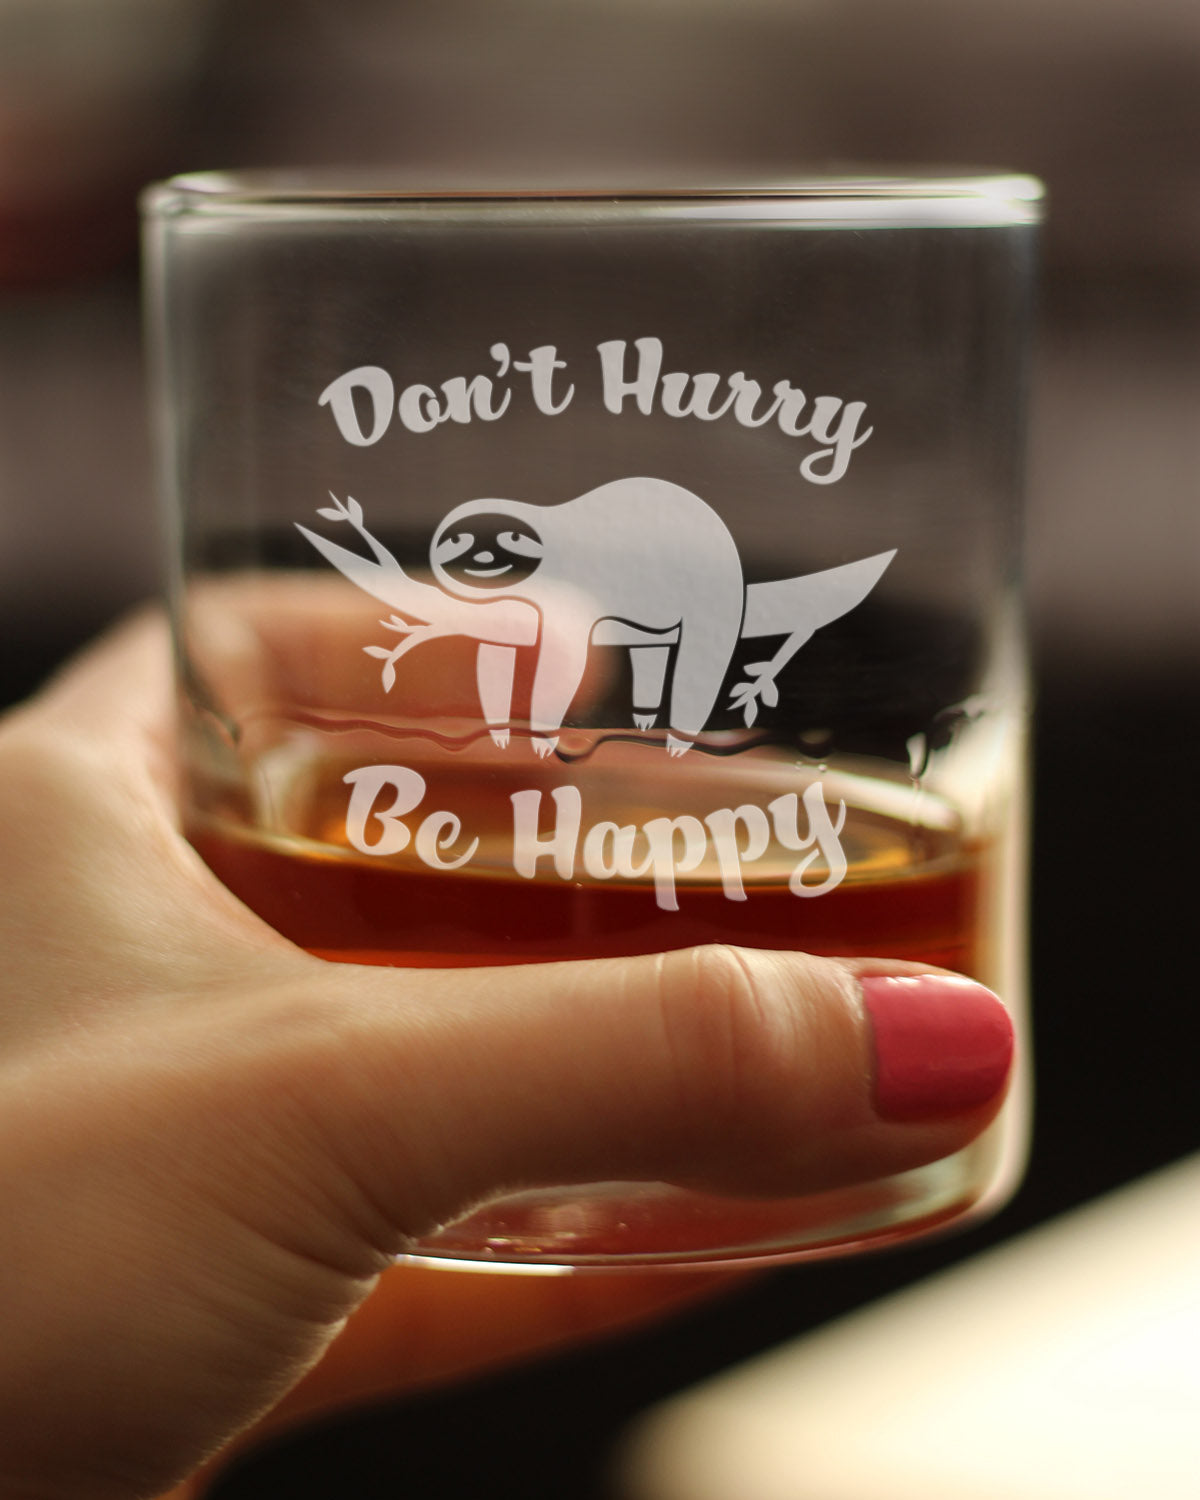 Don't Hurry Be Happy - 10 Ounce Rocks Glass